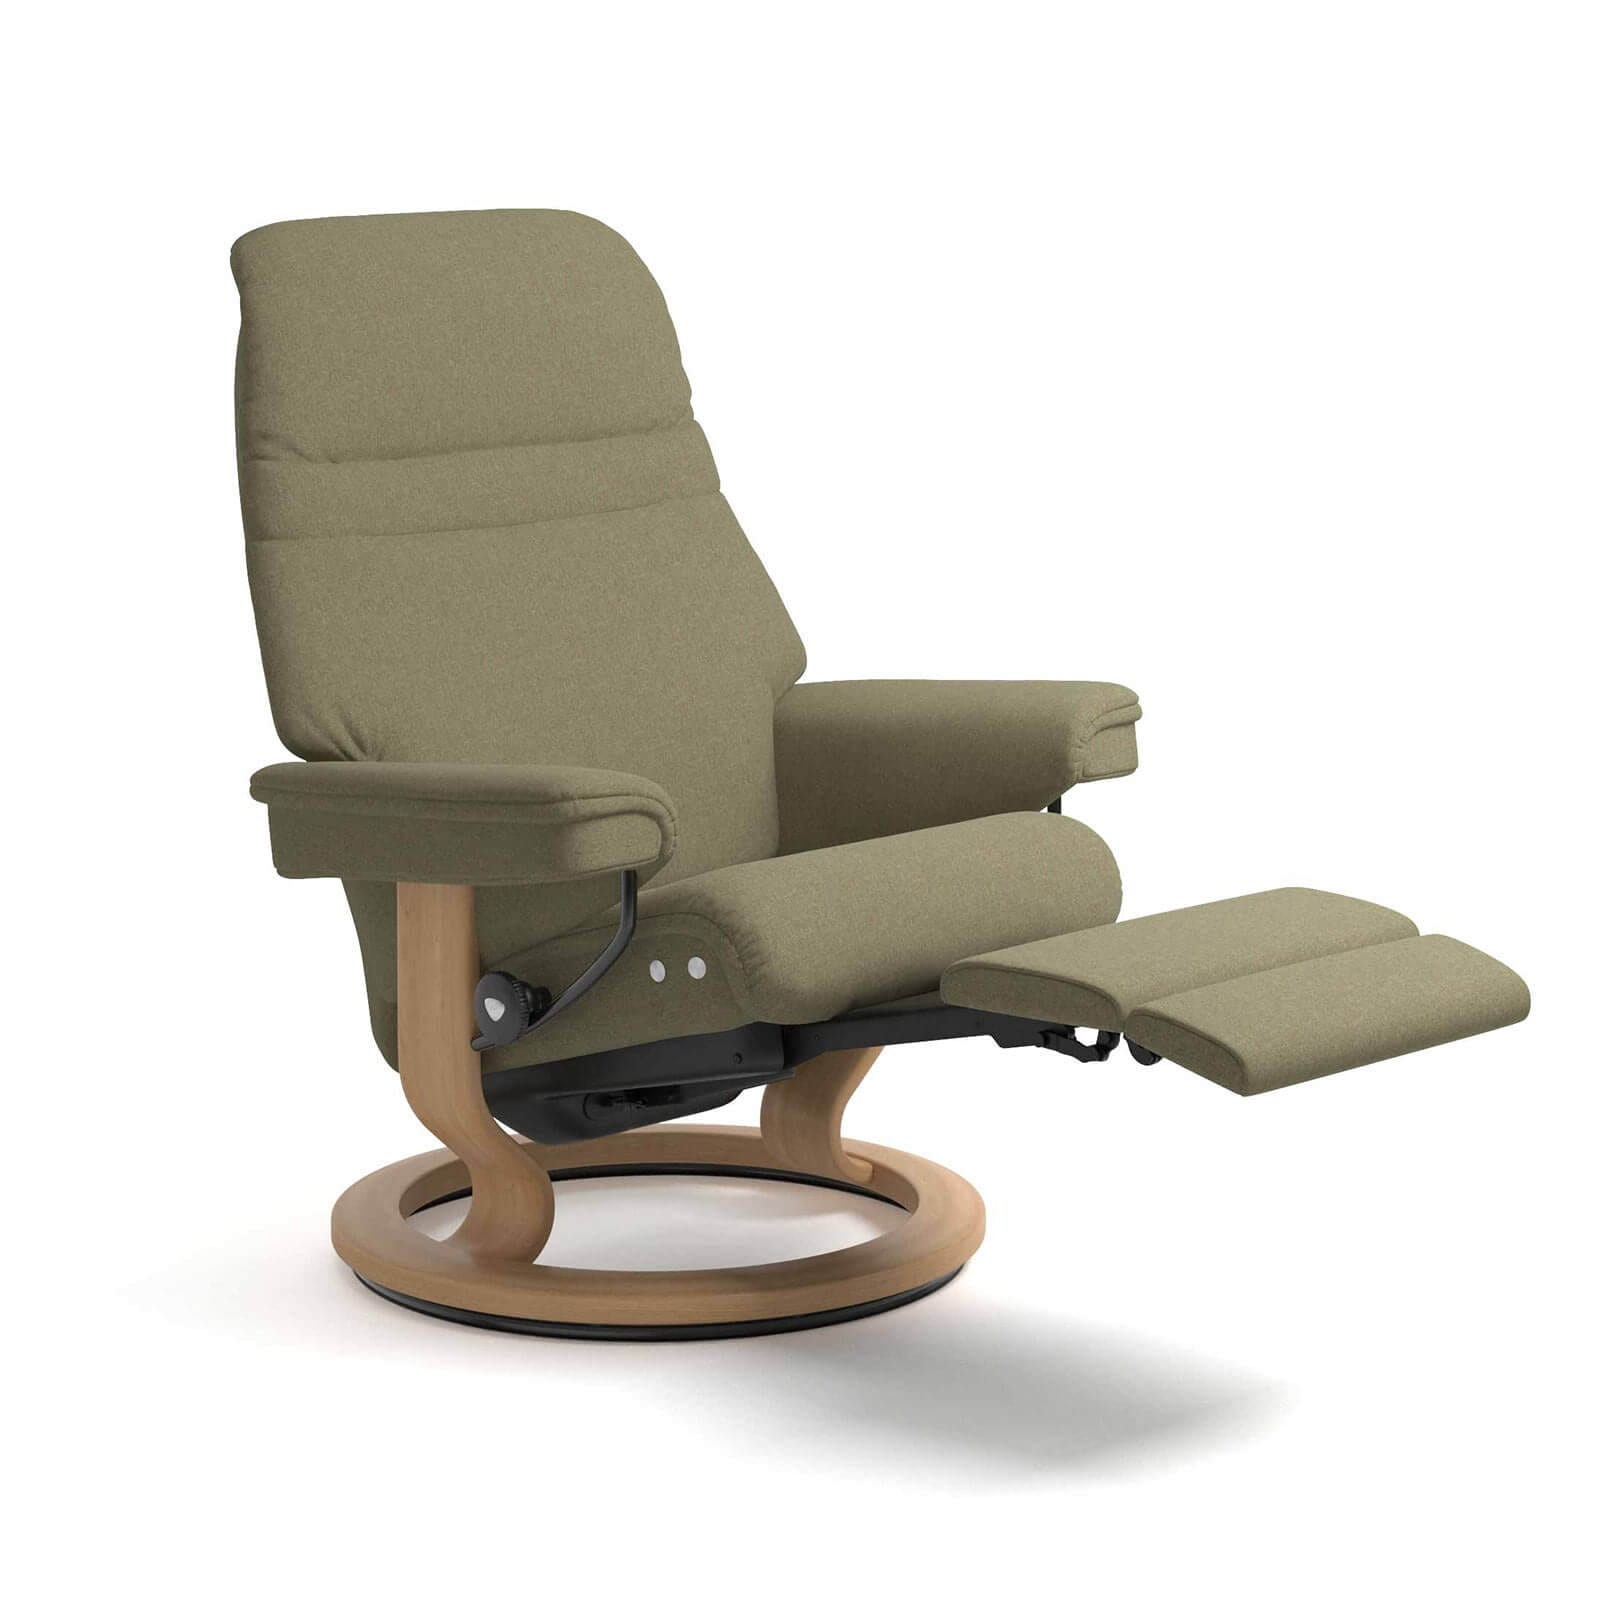 Stressless Sessel Stoff Stressless Sunrise Legcomfort Calido Light Green Stressless